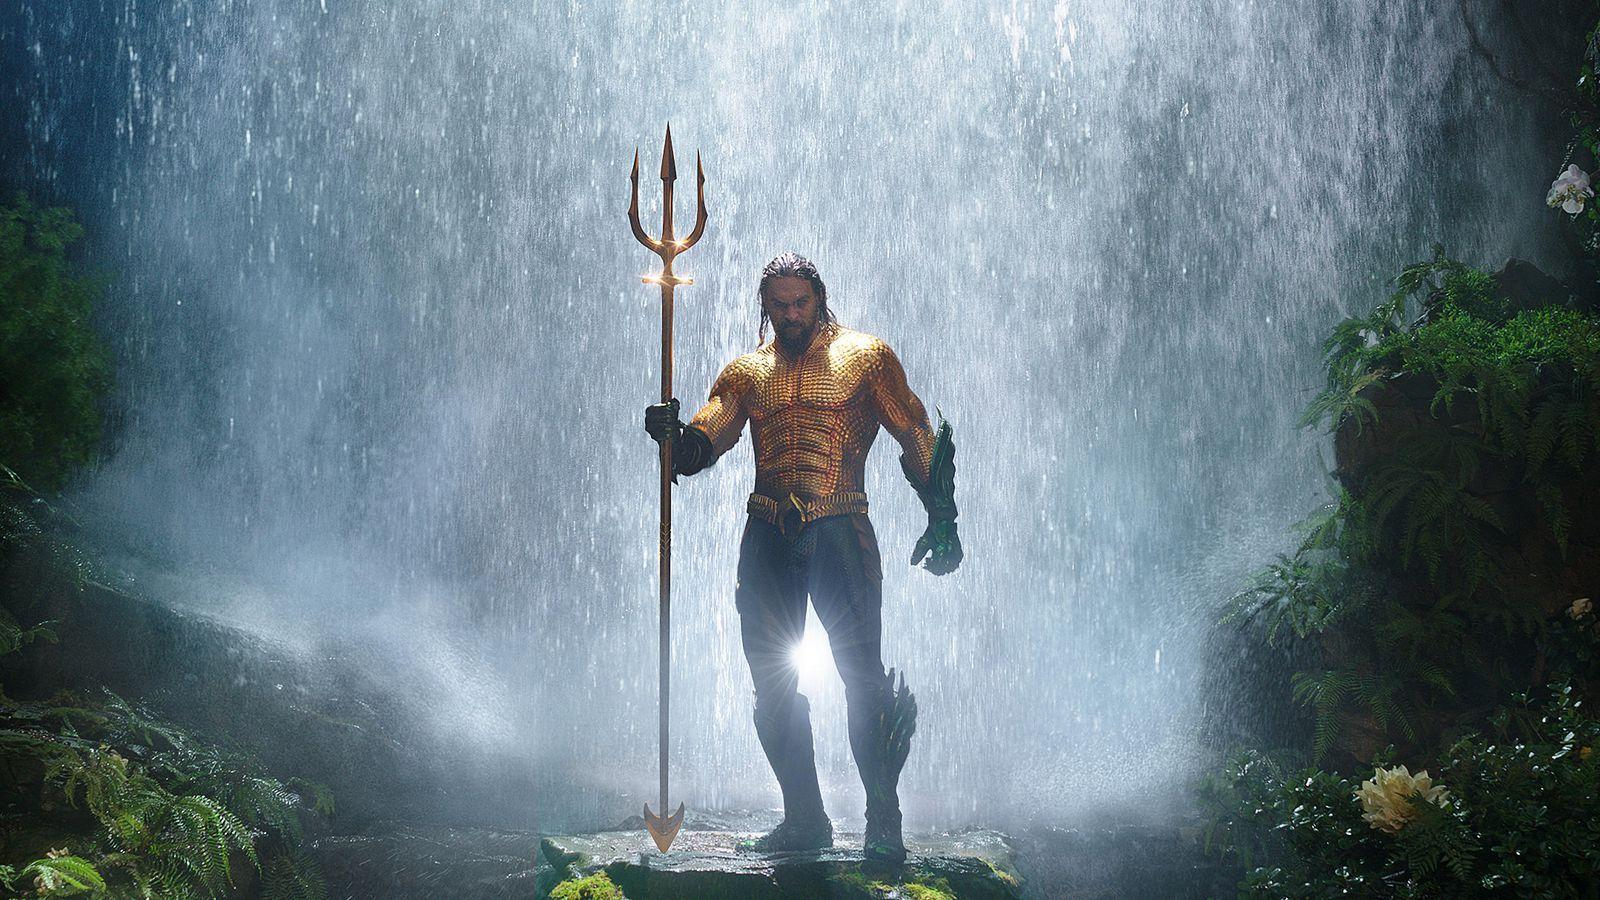 Aquaman: Trailers, release date, cast, plot, rumors and more - CNET